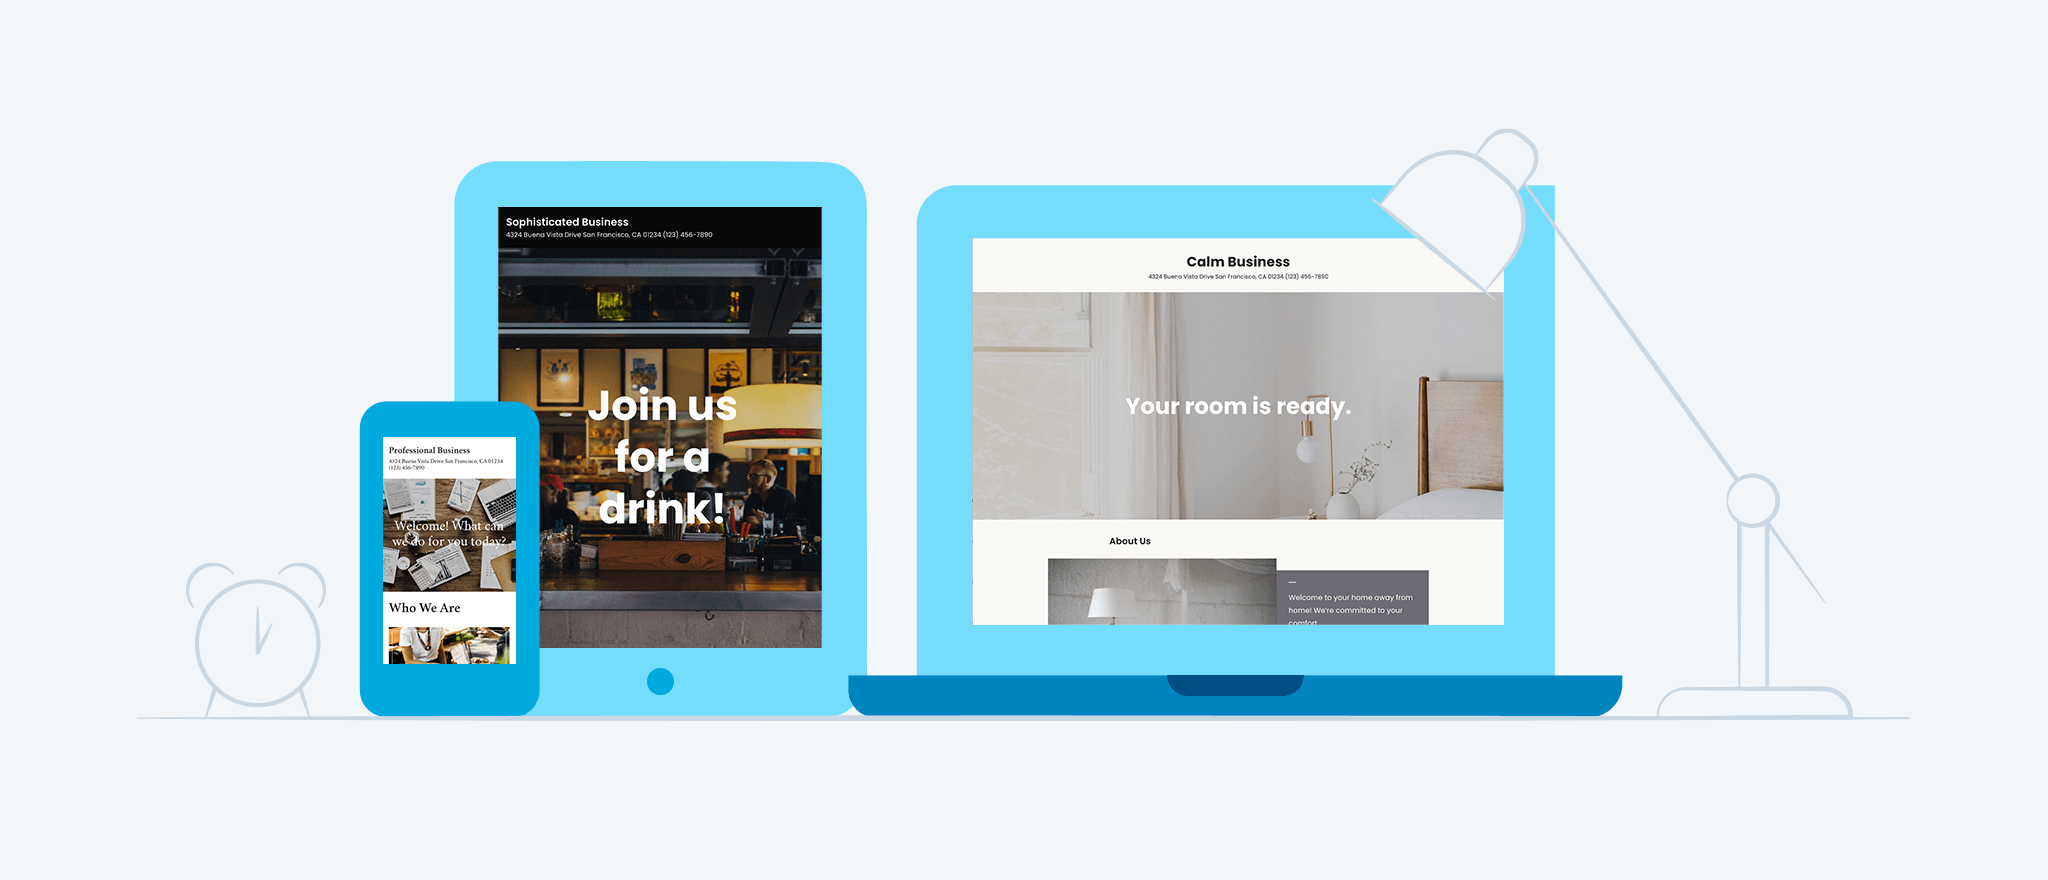 Introducing Six New Business-Oriented Themes